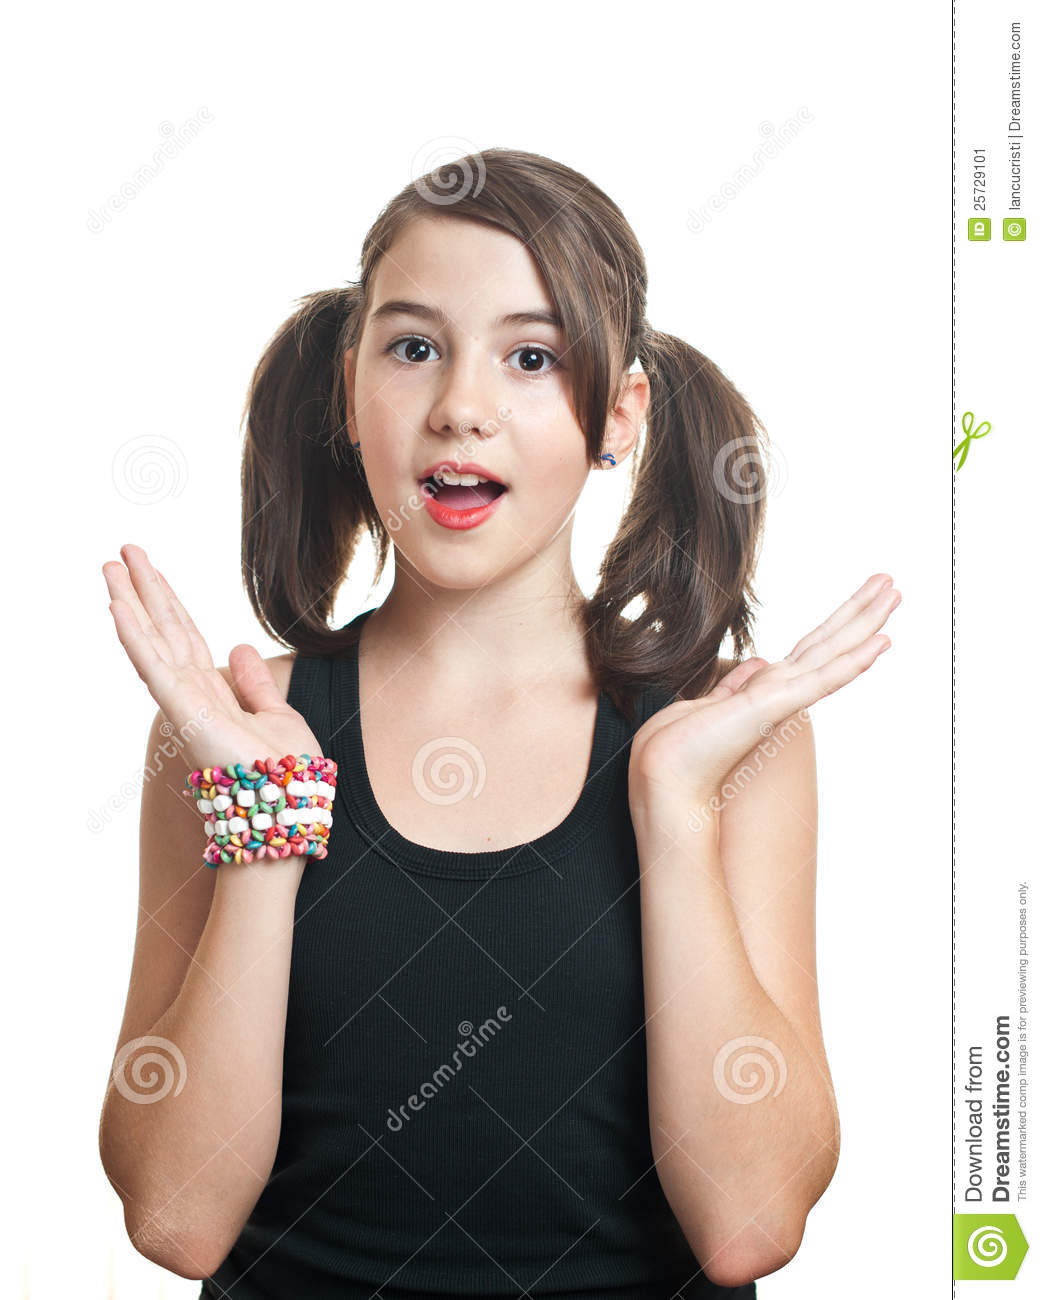 Stock Image Portrait Of Cute Teen Girl With Pony Tails